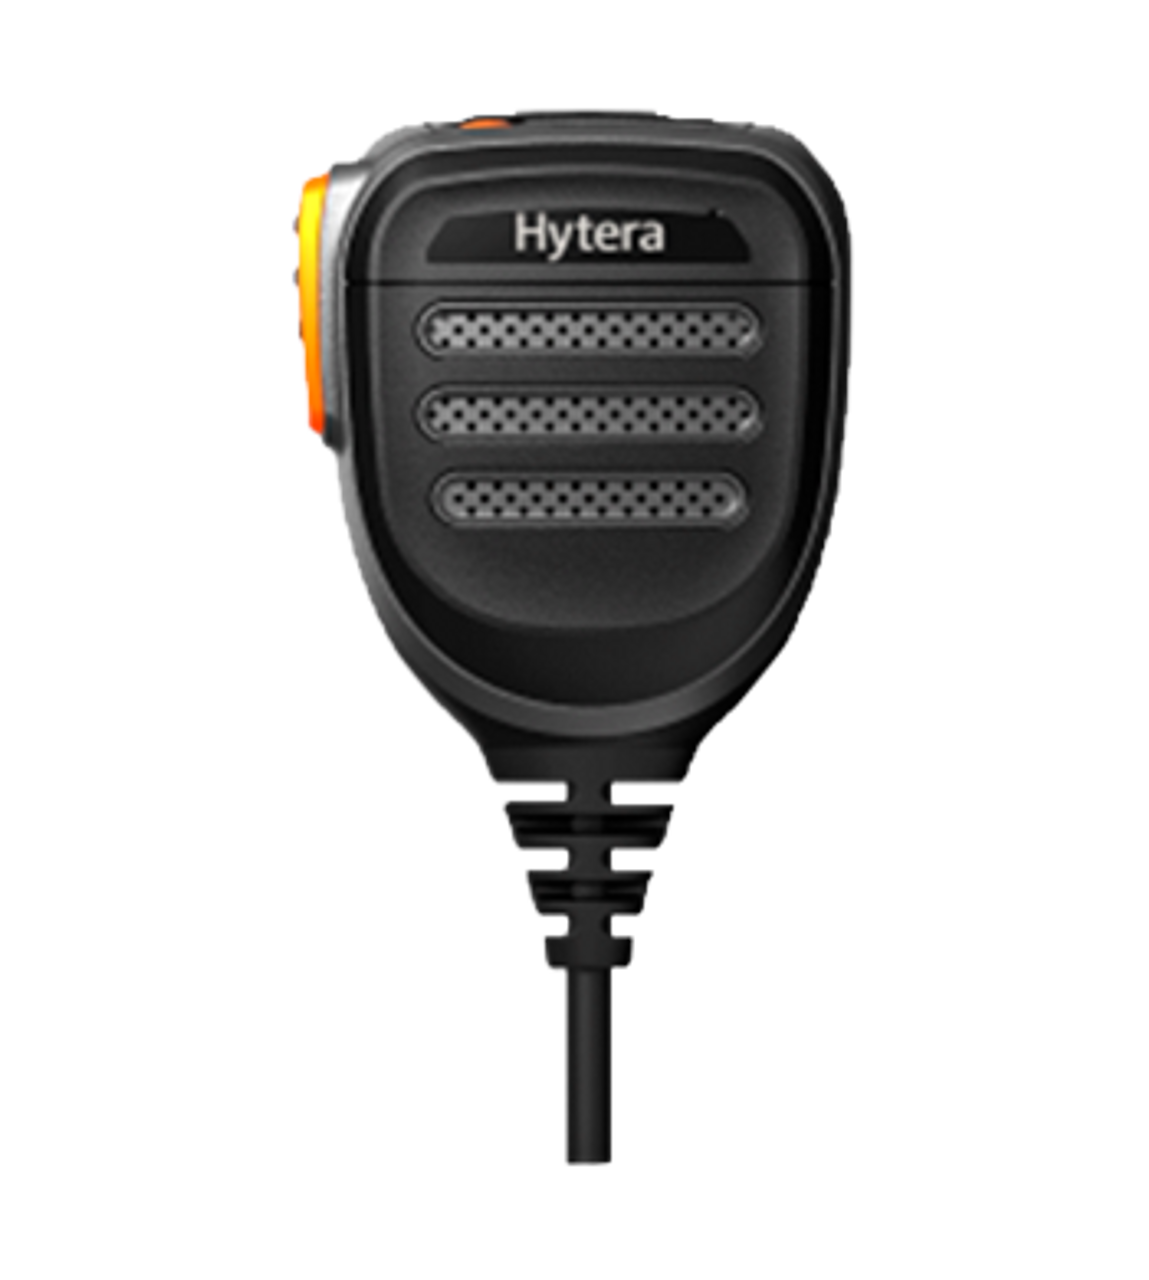 Hytera SM26M1 IP54 Rated Remote Speaker Microphone